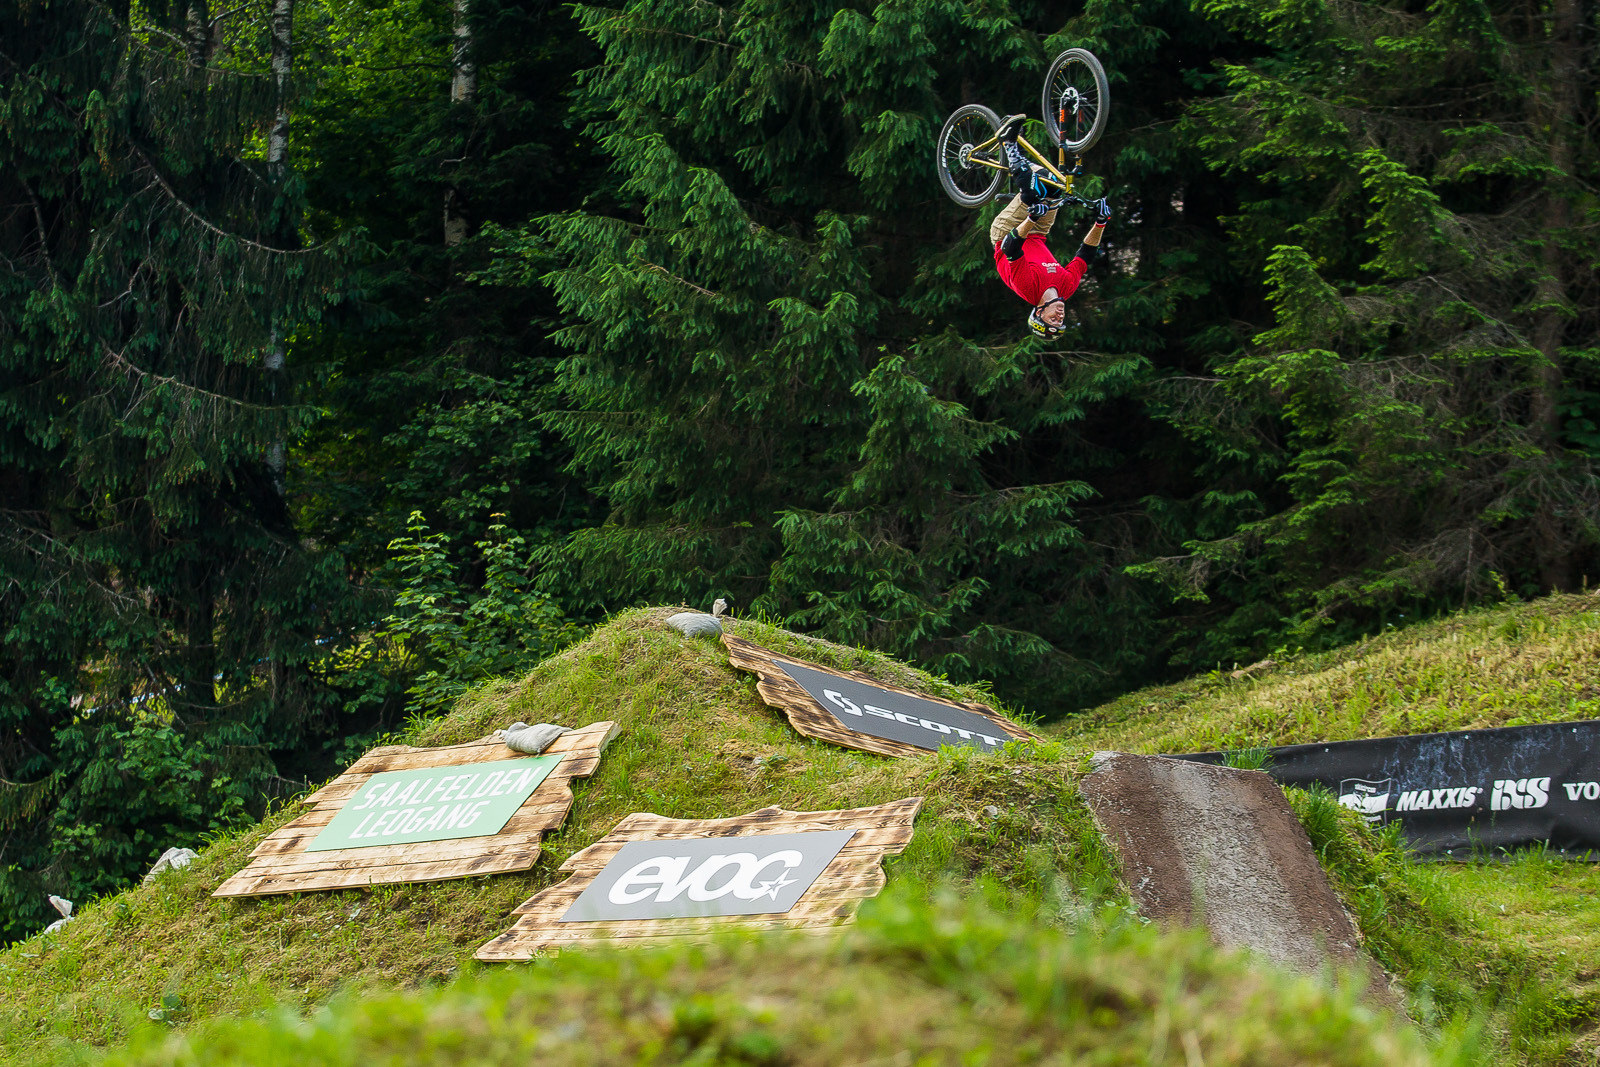 Ryan Nyquist Backflips his Mountain Bike at 26Trix - PIT BITS - Leogang World Cup Downhill - Mountain Biking Pictures - Vital MTB